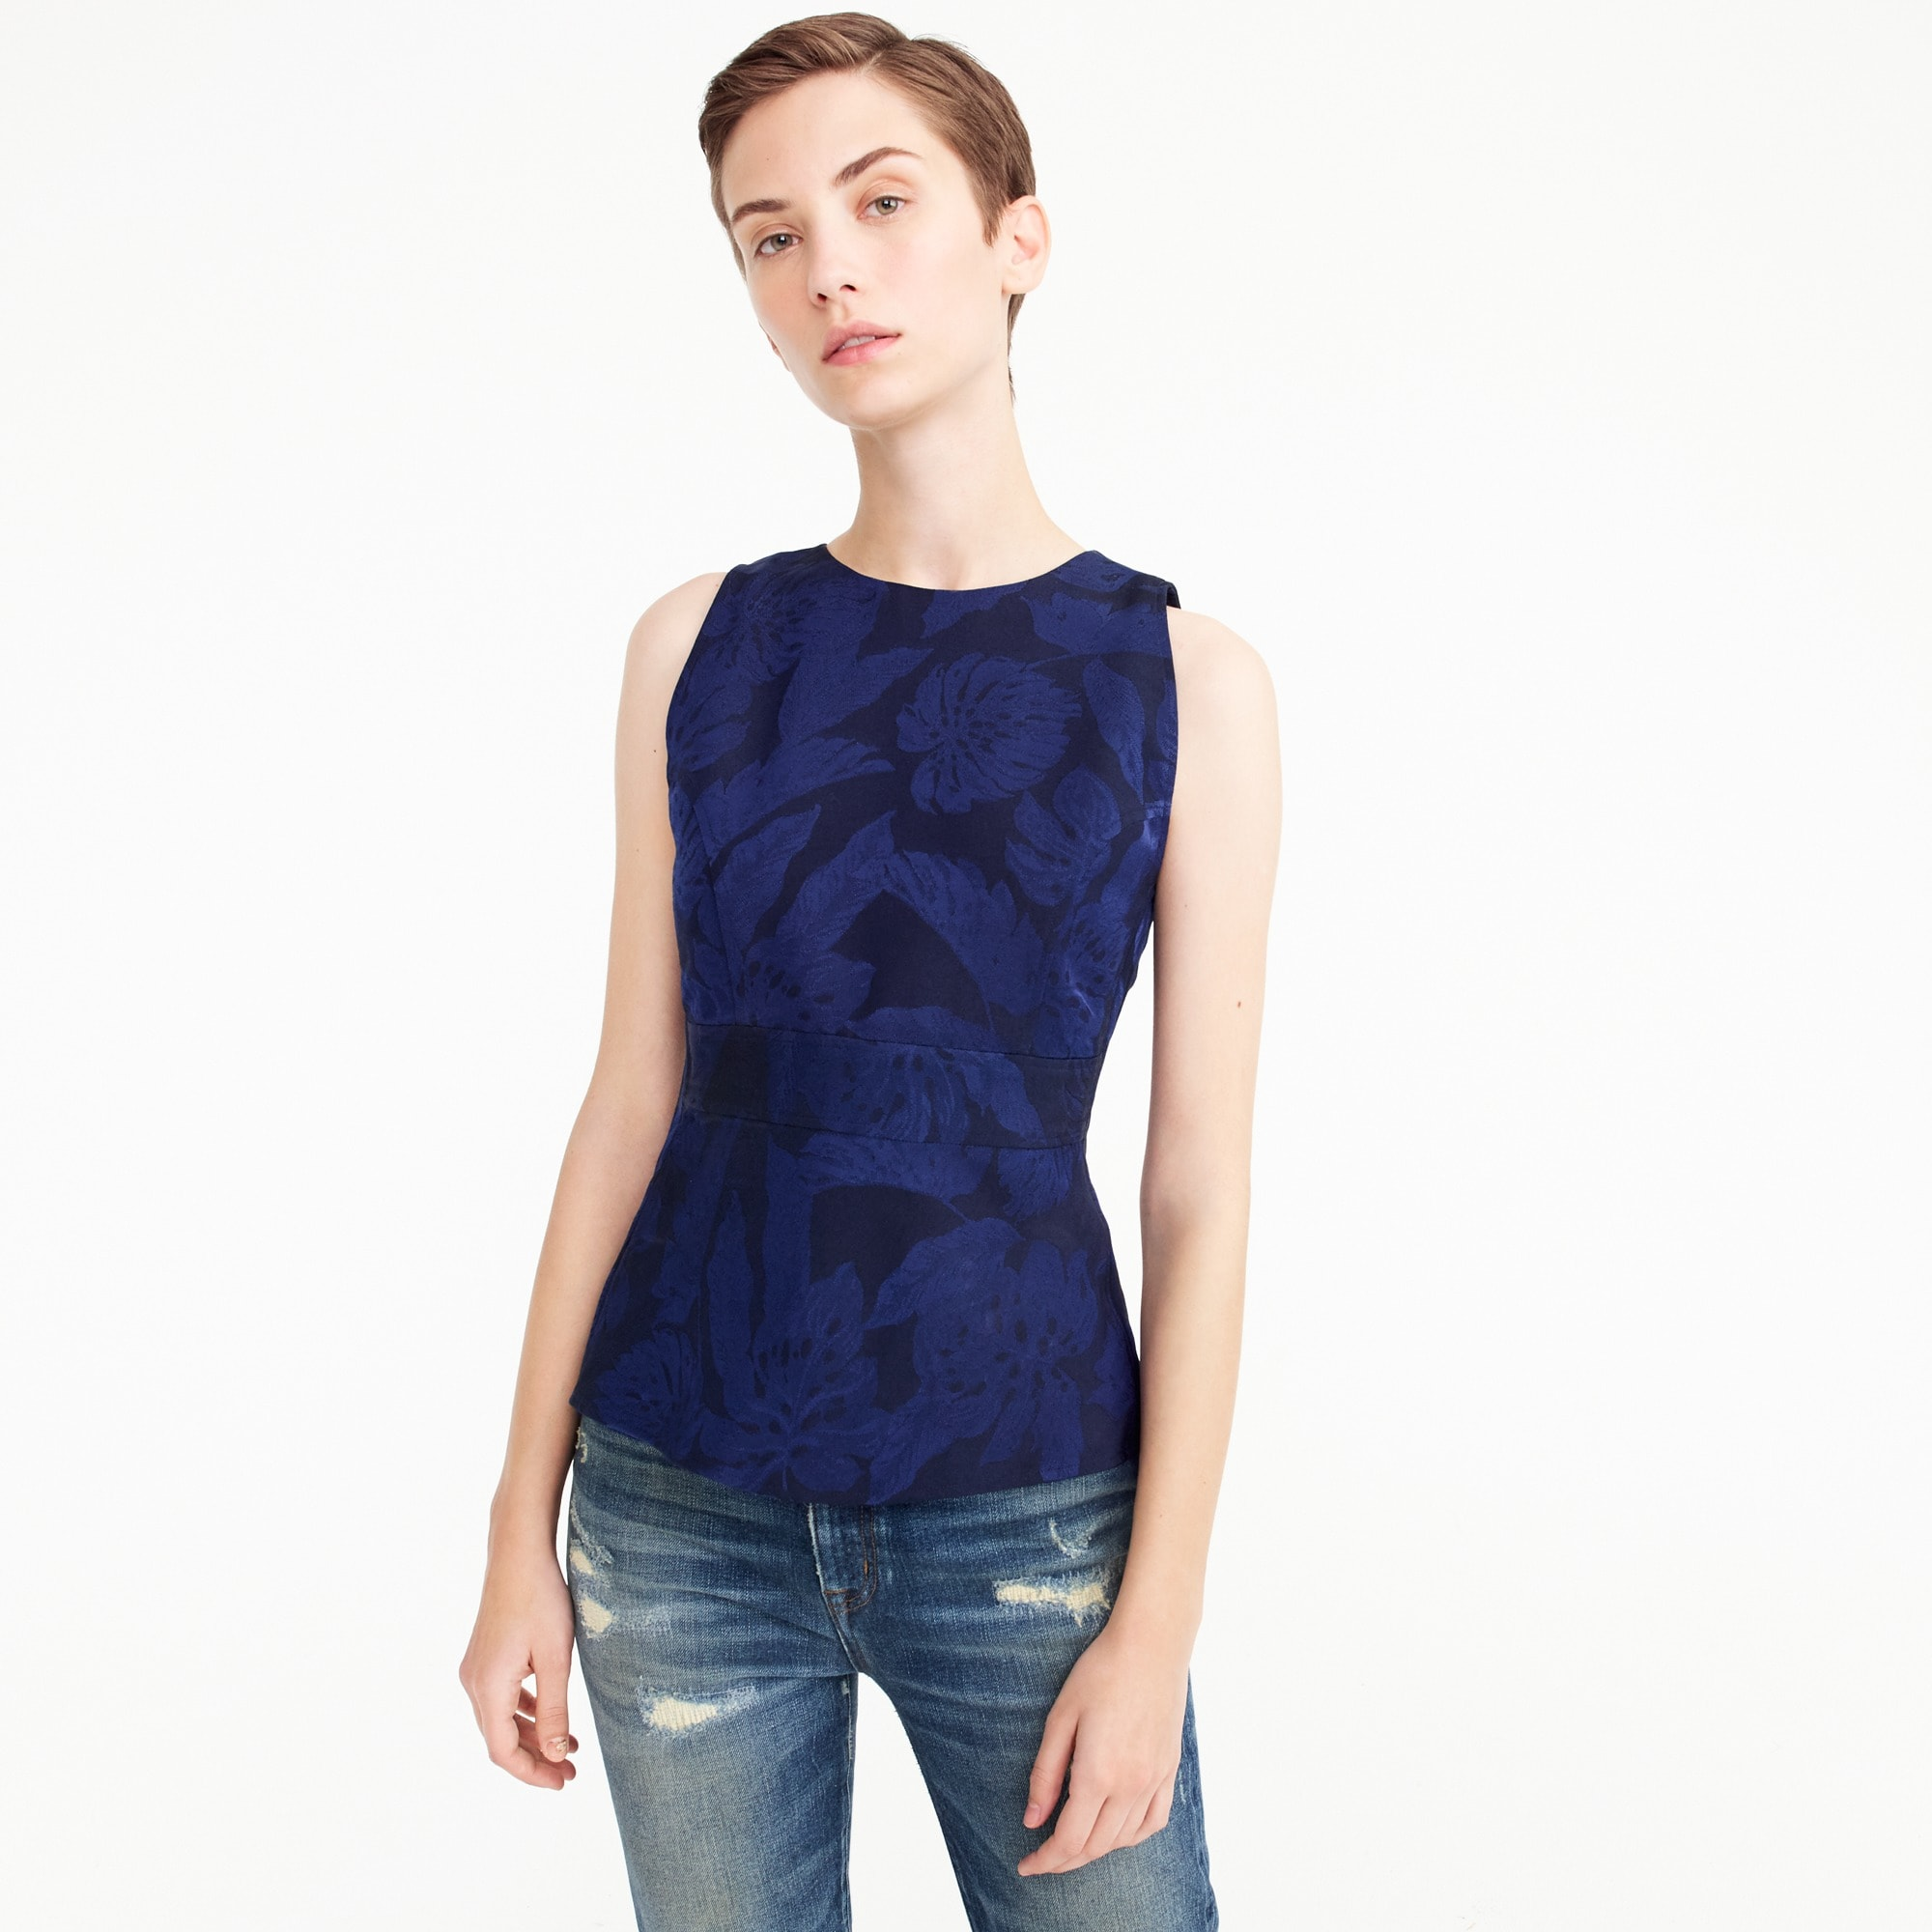 women's collection floral jacquard top - women's shirts